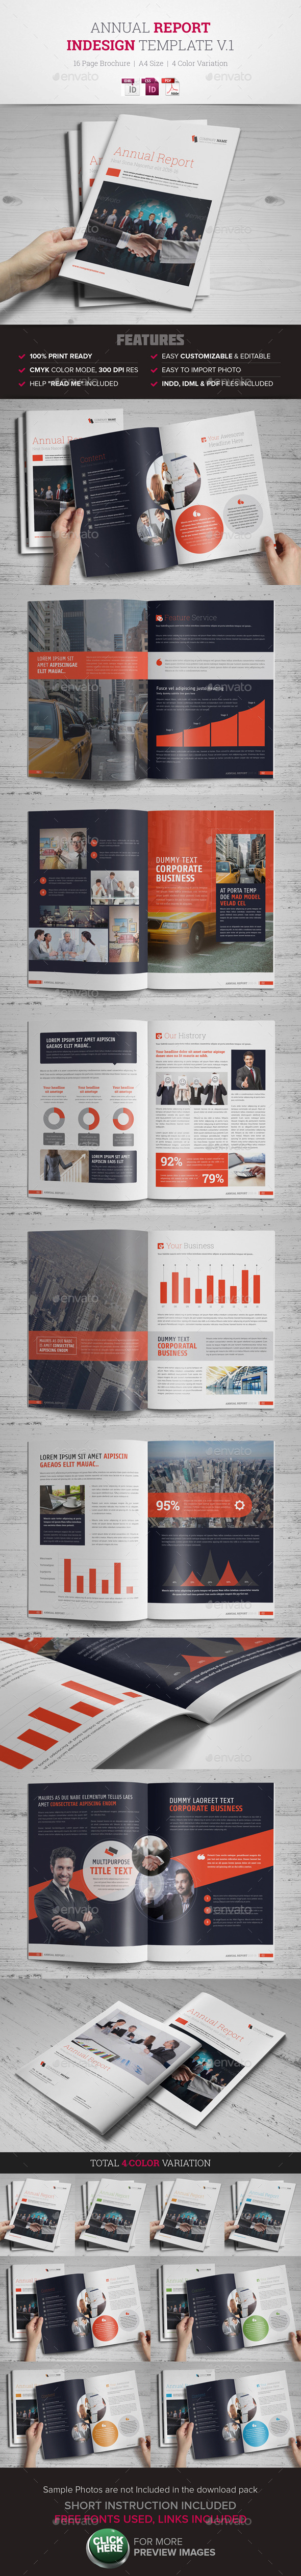 GraphicRiver Annual Report InDesign Template 10775715